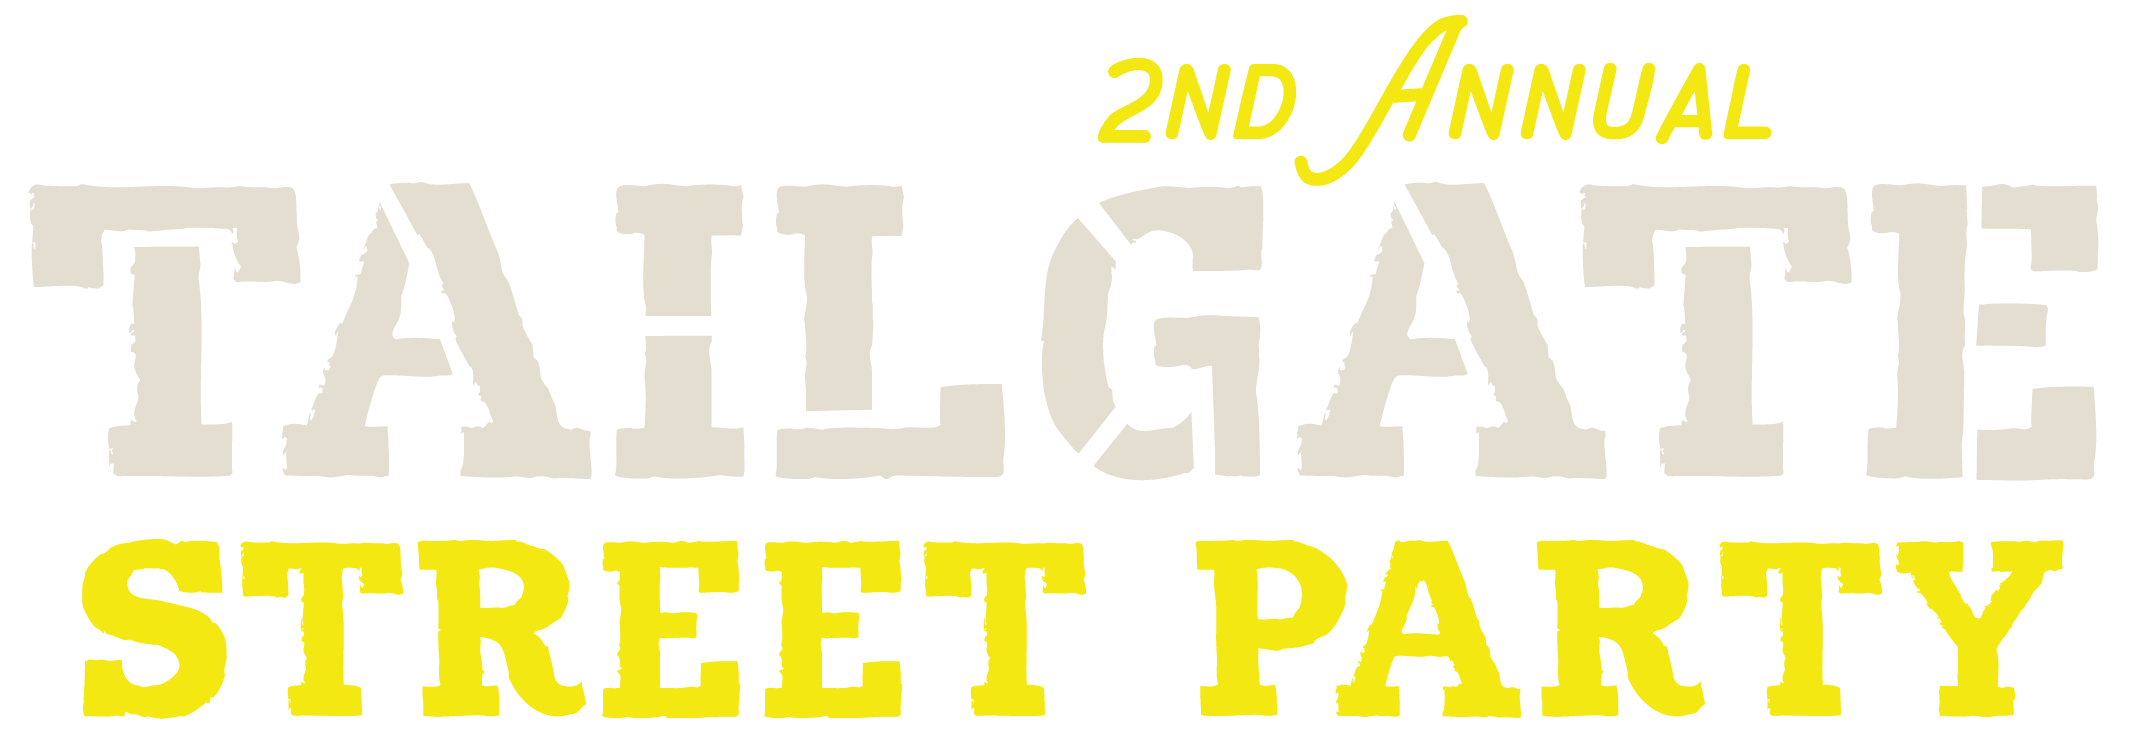 TailgateGraphic-02.png